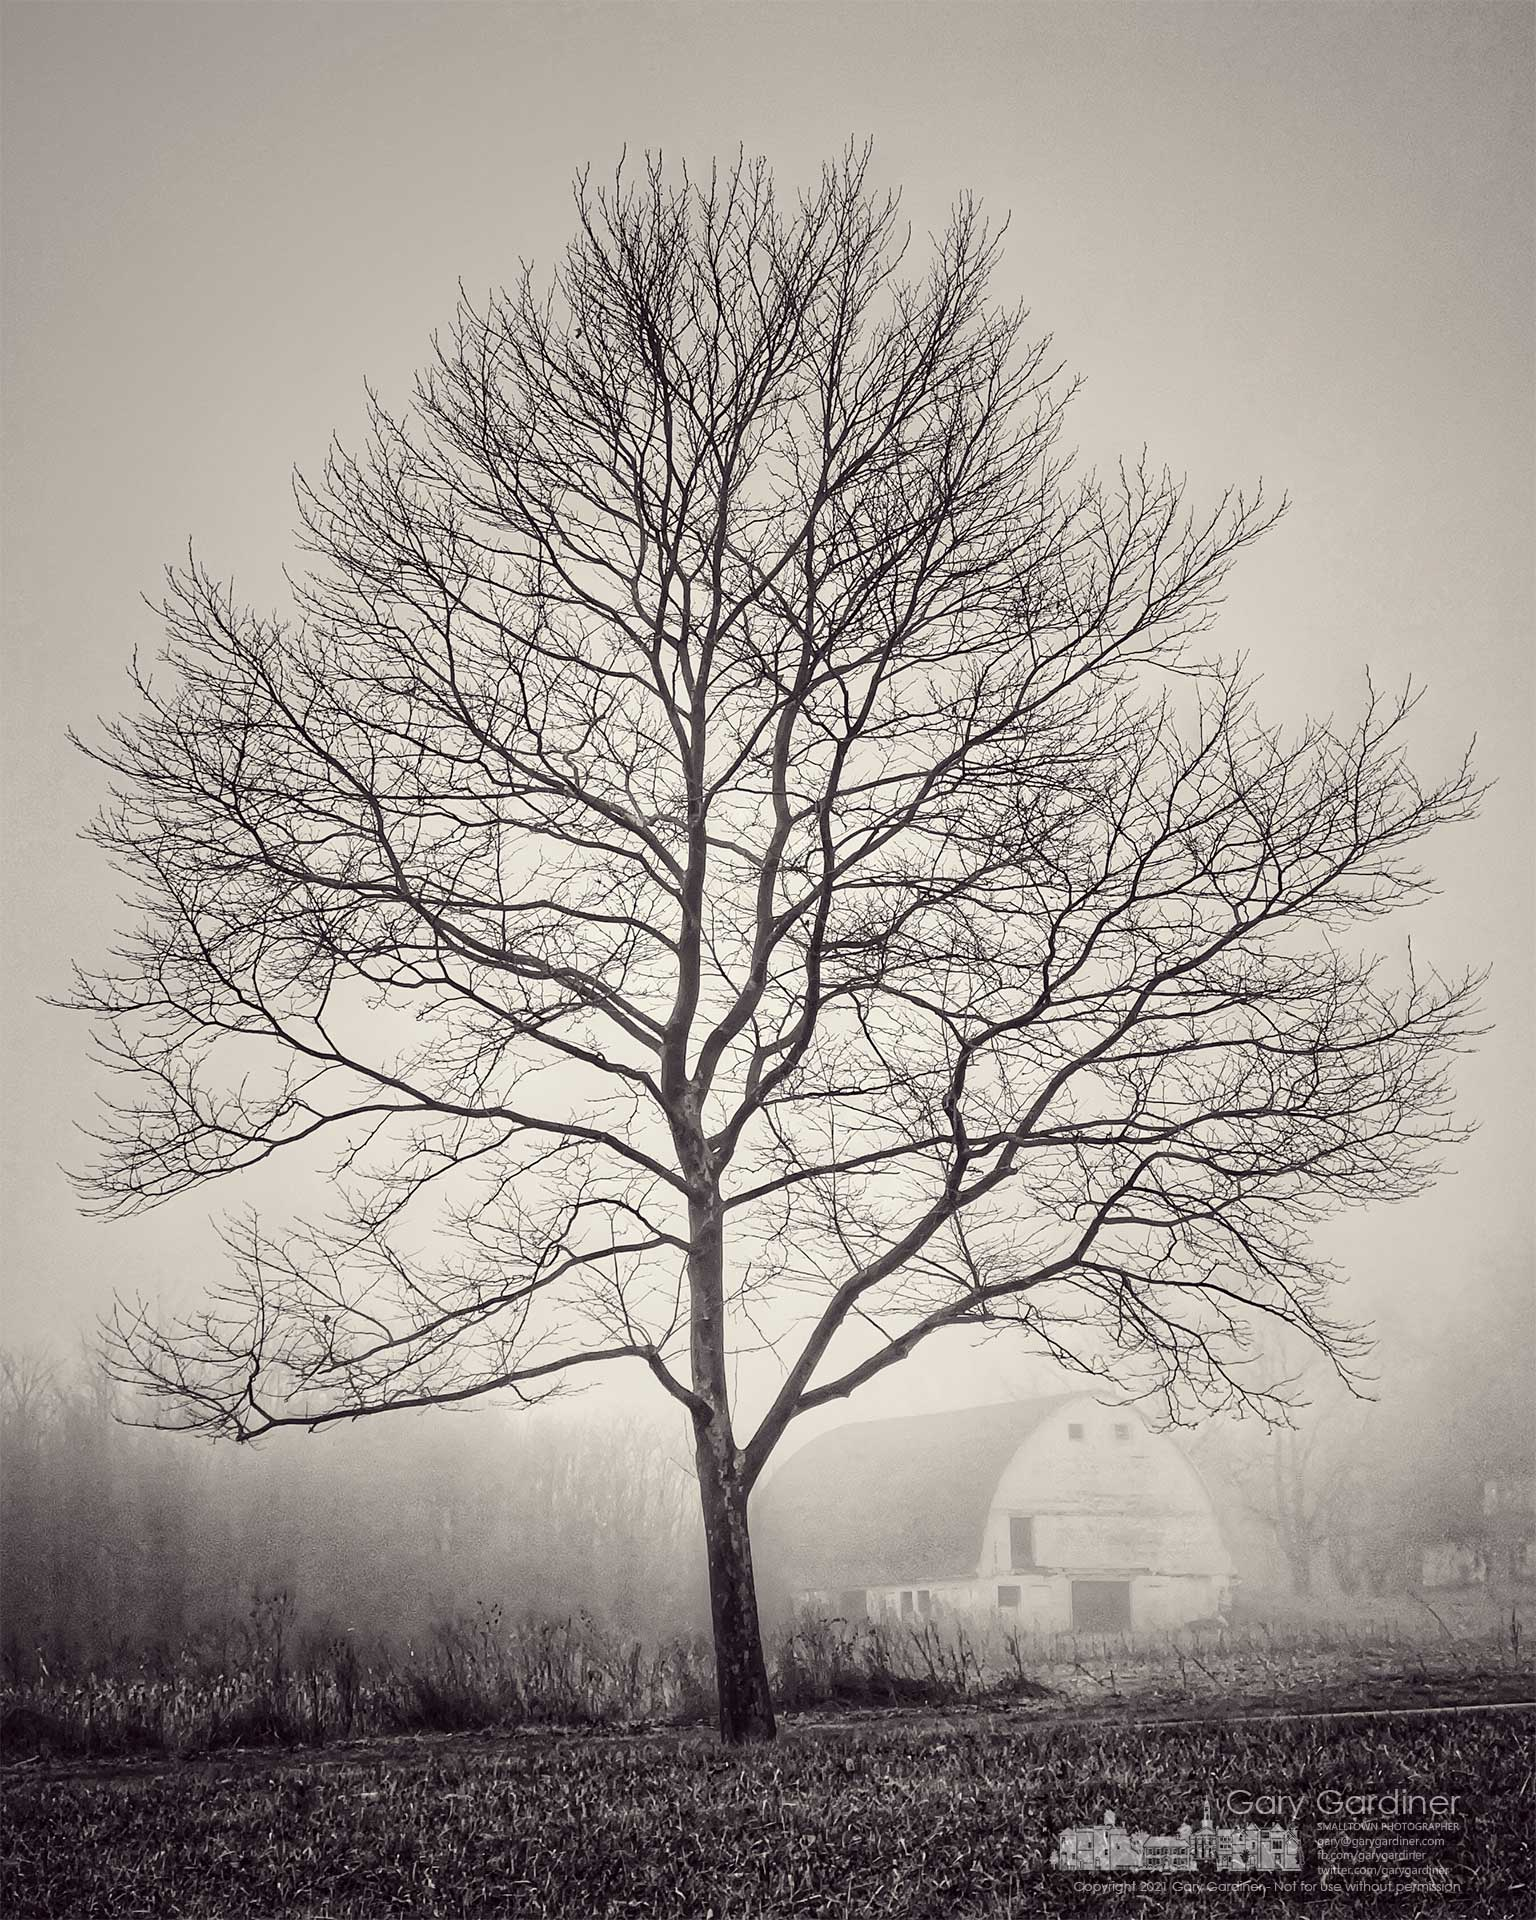 The bare trunk and limbs of a tree on Cooper Road mark the tones of a morning fog that shrouds the barn on the Braun Farm. My Final Photo for March 17, 2021.